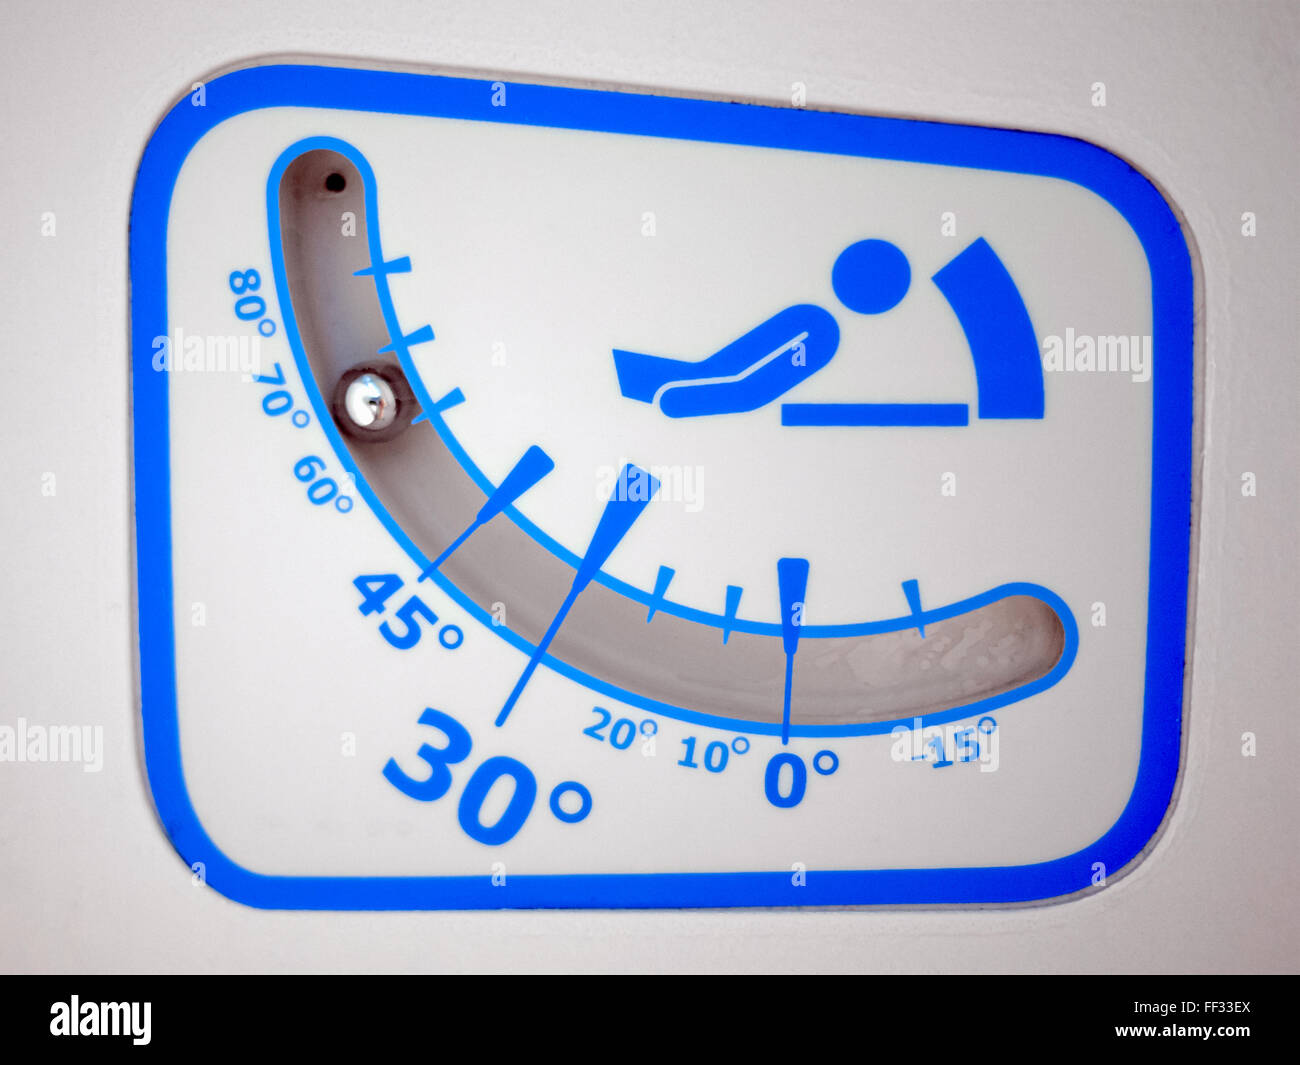 Picture of hospital Head-Of-Bed angle indicator to show degree of incline of the patient and bed - Stock Image